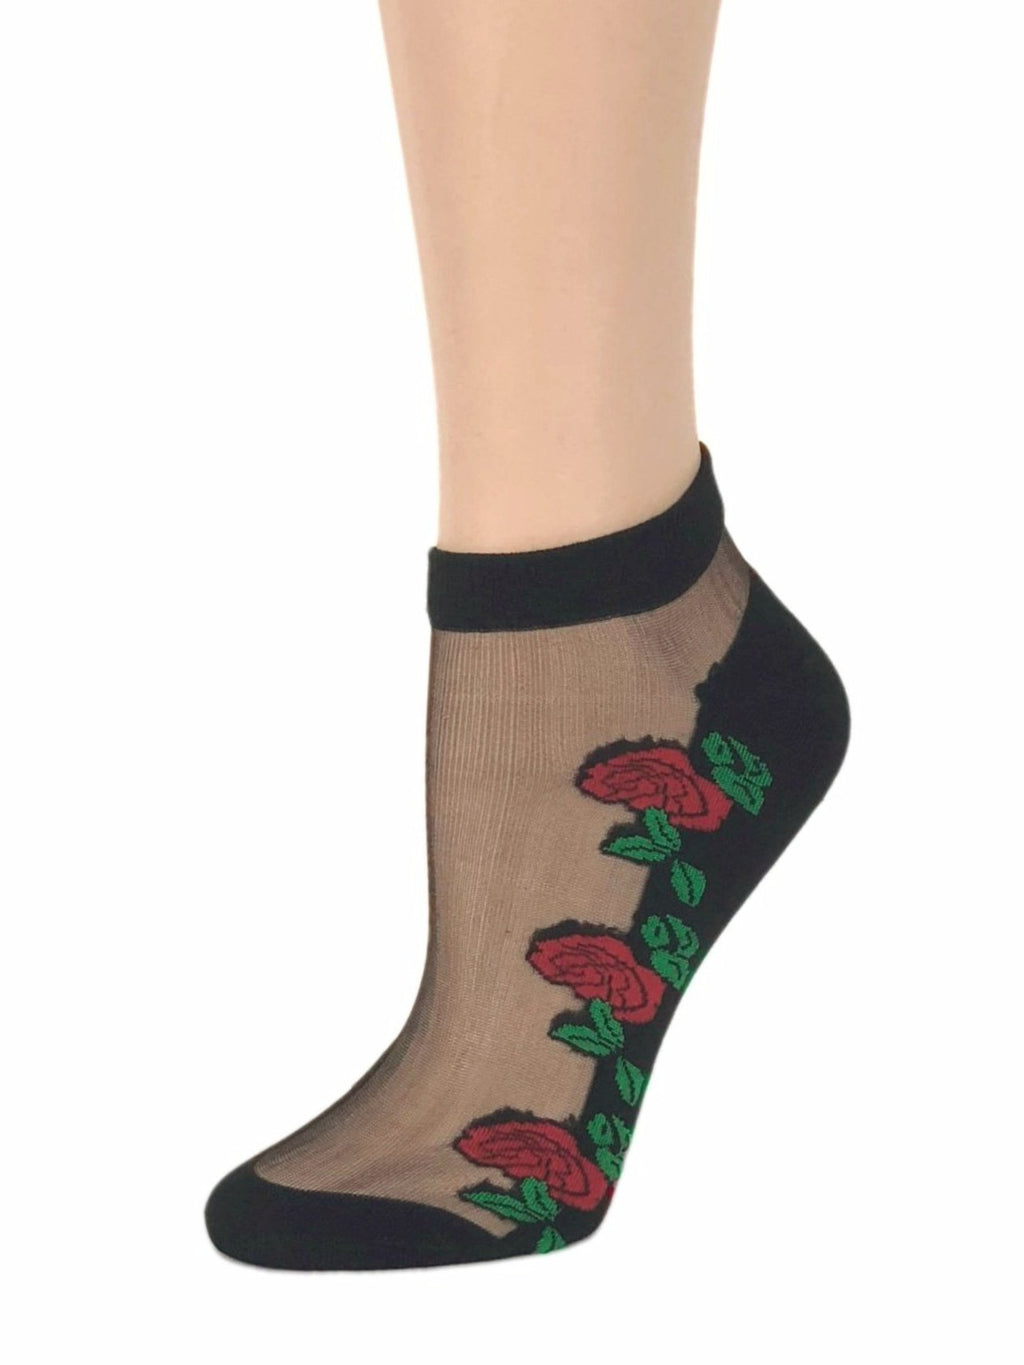 Large Red Roses Sheer Socks - Global Trendz Fashion®